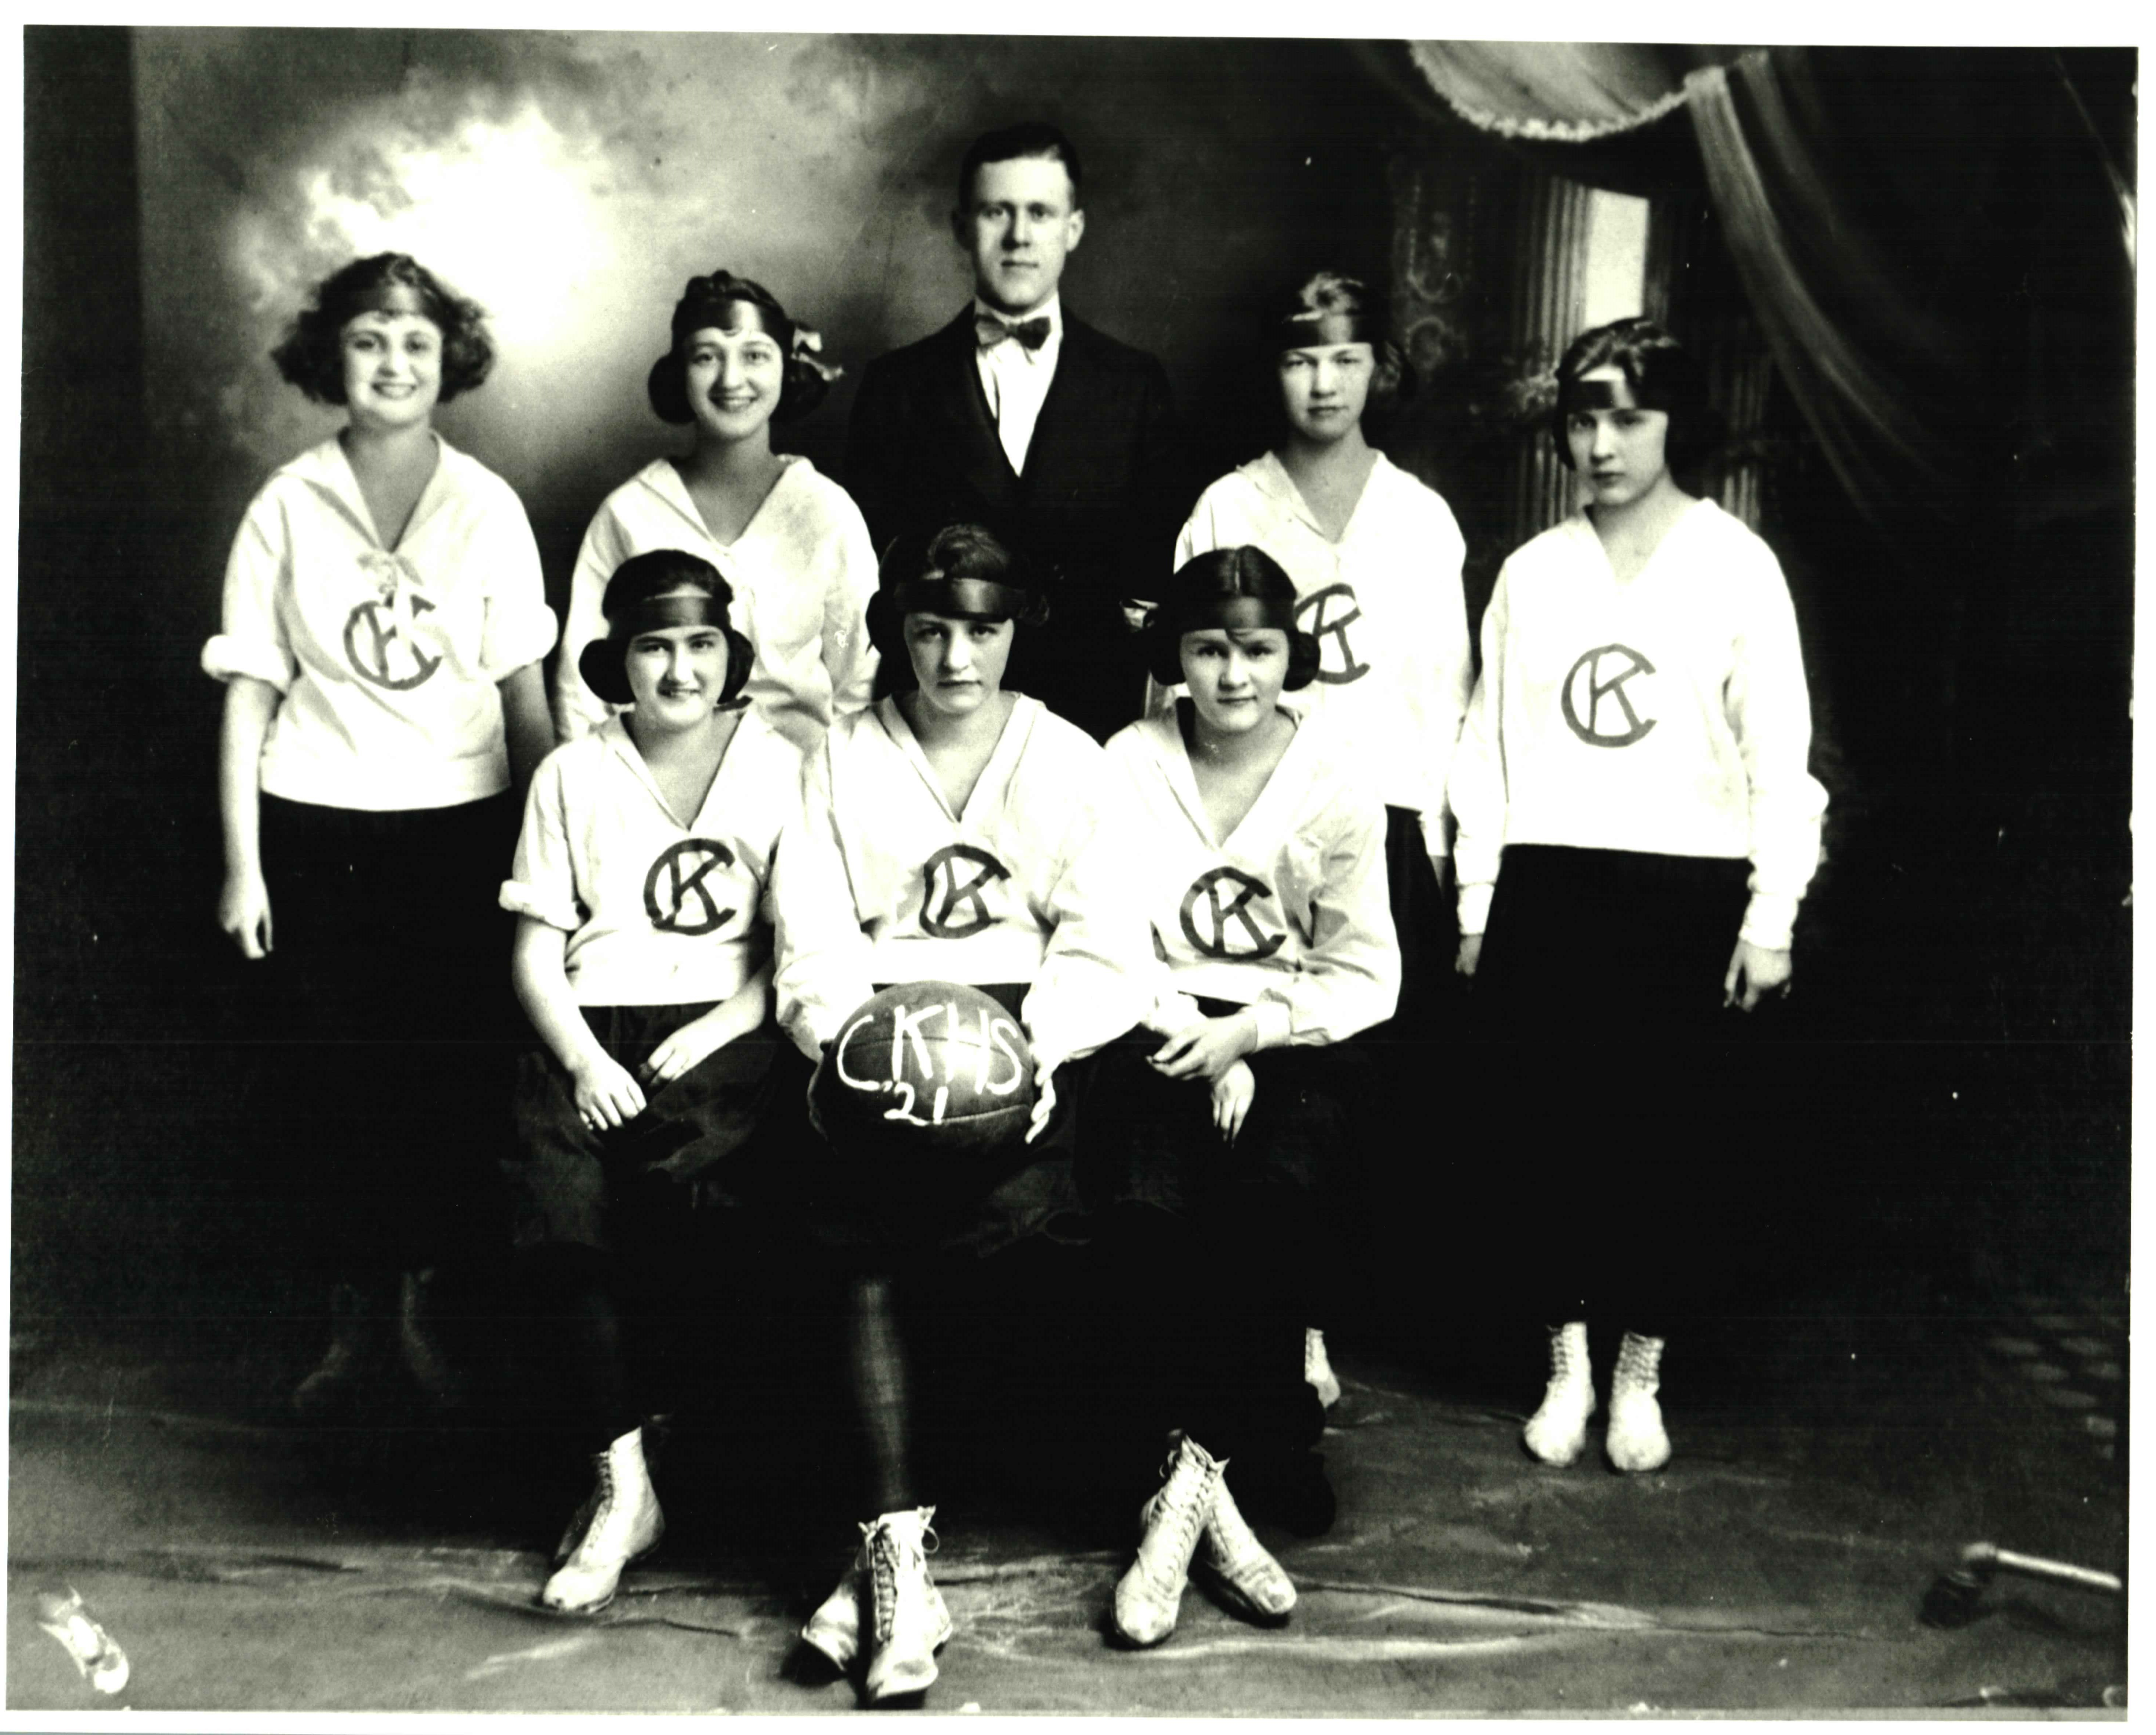 The 1921 Girls Basketball team. Courtesy of the Ceredo Historical Society Museum.